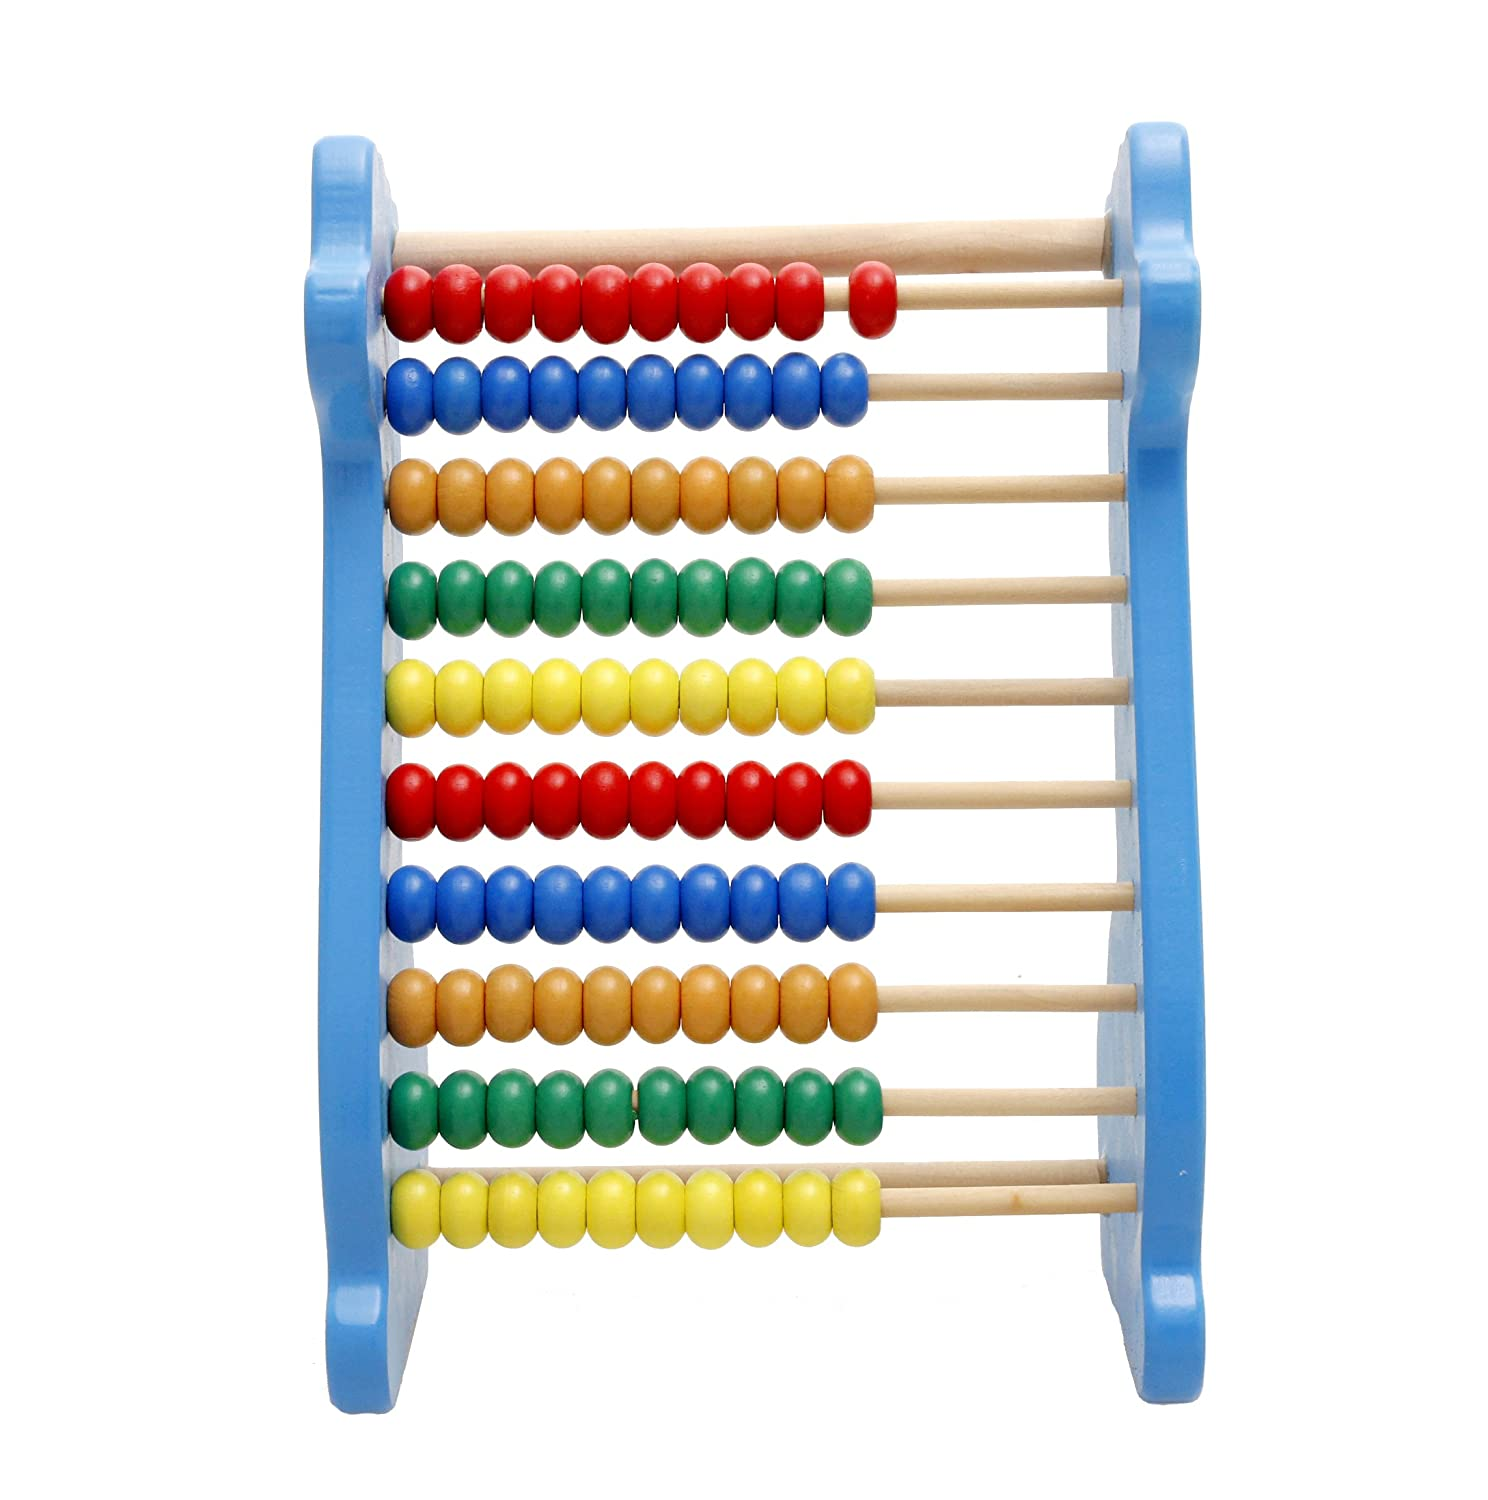 Abacus Wall Art Amazoncom Lewo Wooden Abacus Classic Math Educational Counting